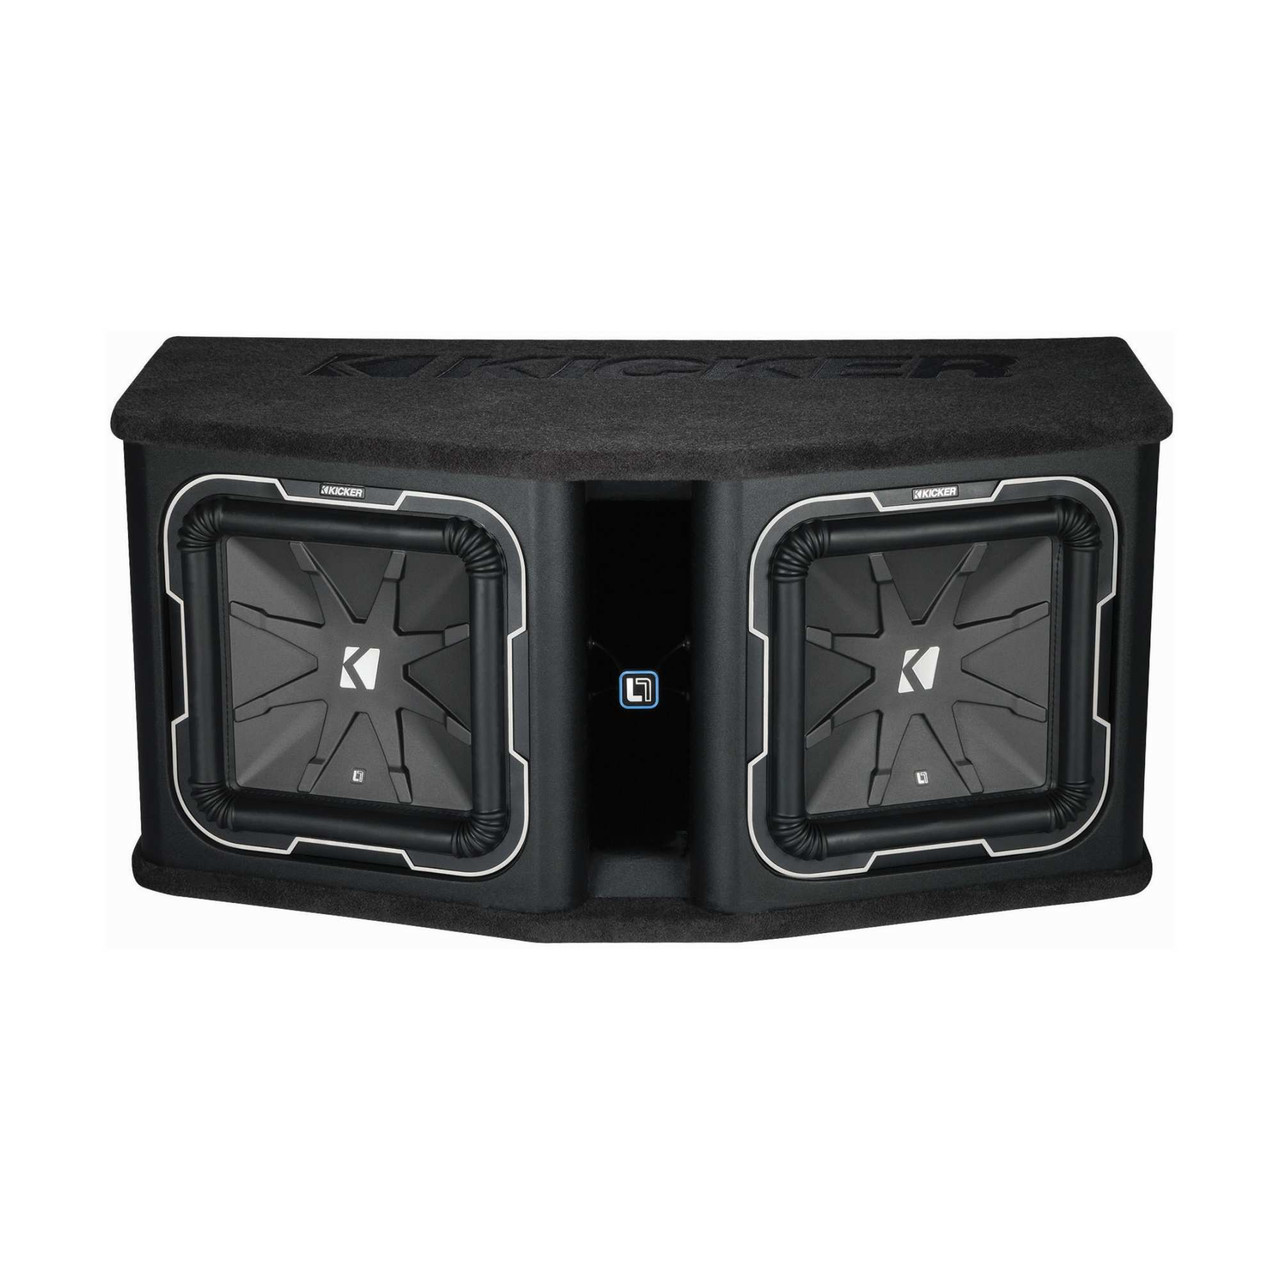 Kicker Q-Cl DL712 Dual KICKER L7 12-inch Subwoofers in Vented Enclosure, on mtx wiring diagram, re subwoofers 12 wiring diagram, kicker cvr 12 wiring, kicker dx 250.1 wiring-diagram, kicker cvr 15 wiring, kicker dx250.1 wiring, kicker comp 12 wiring diagram, jl audio w7 wiring diagram, audiobahn subwoofer wiring diagram, kicker sub wiring,